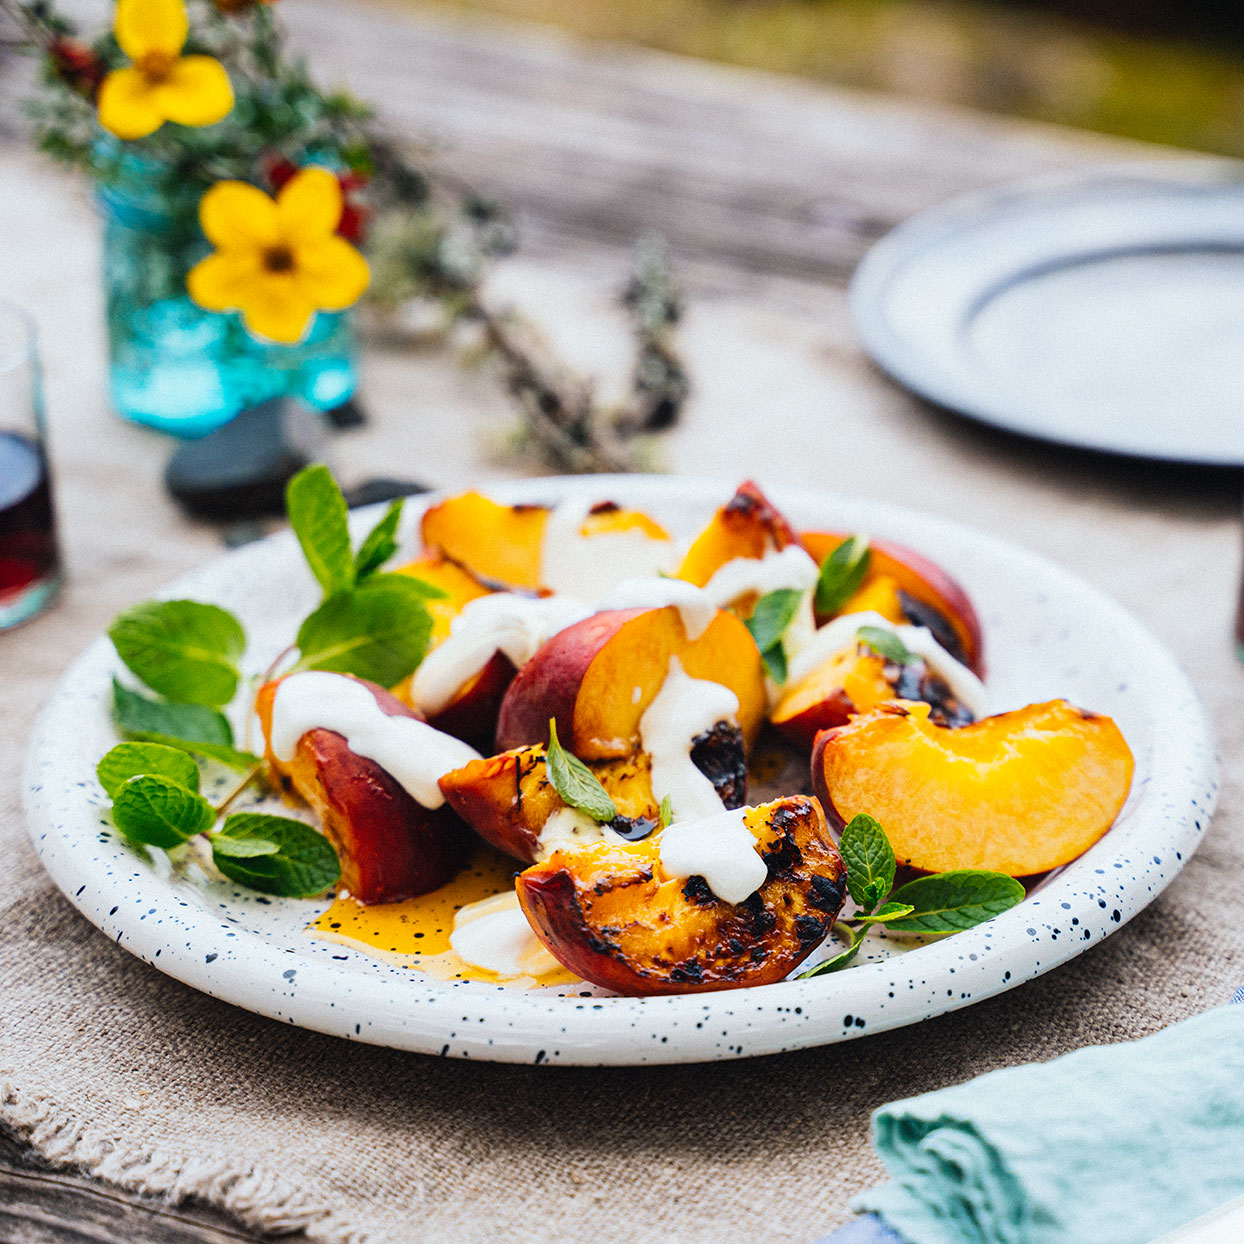 Here's a new idea for dessert on a camping trip or in the backyard. Because you don't need the recipe for s'mores. But you could totally crumble some graham crackers on top to add some crunch to these grilled peaches. Source: EatingWell Magazine, June 2020